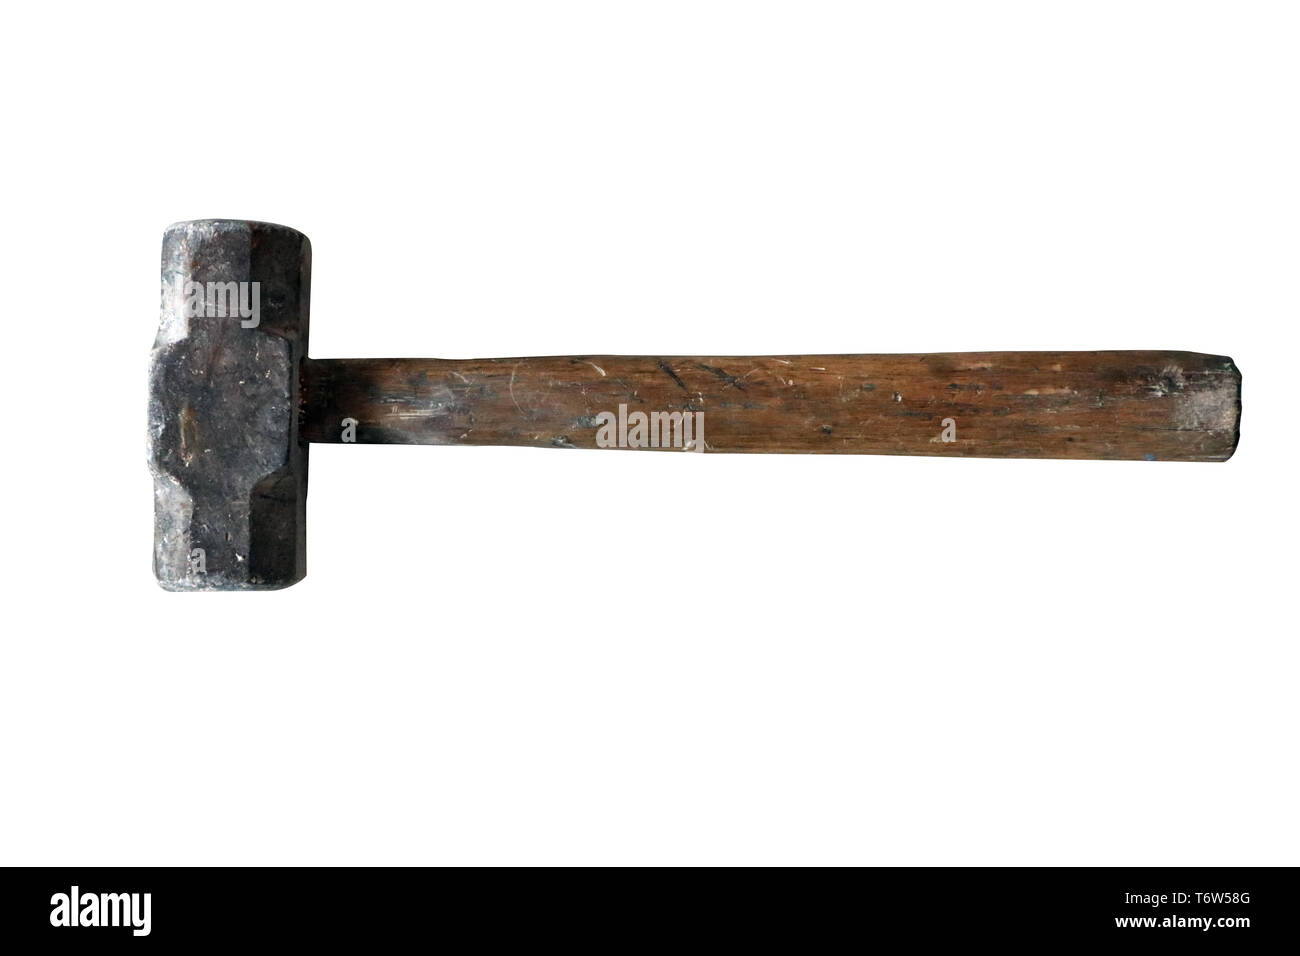 Old used hammer tool isolated on white background - Stock Image